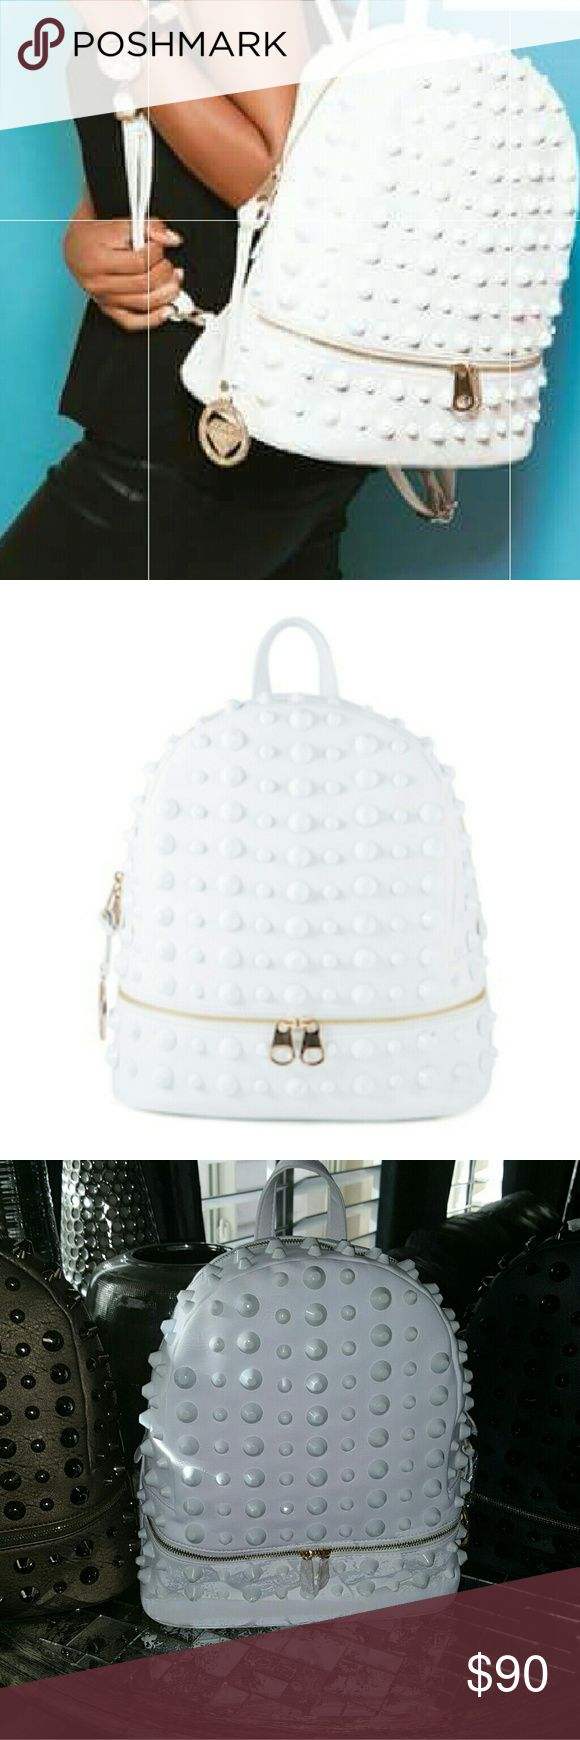 Traci Lynn White Studded backpack Stud and Chic White Backpack with gold hardware. Inside pockets for cell phone & glasses also a zippered pocket inside. Don't let this beautiful backpack pass you by. Bags Backpacks